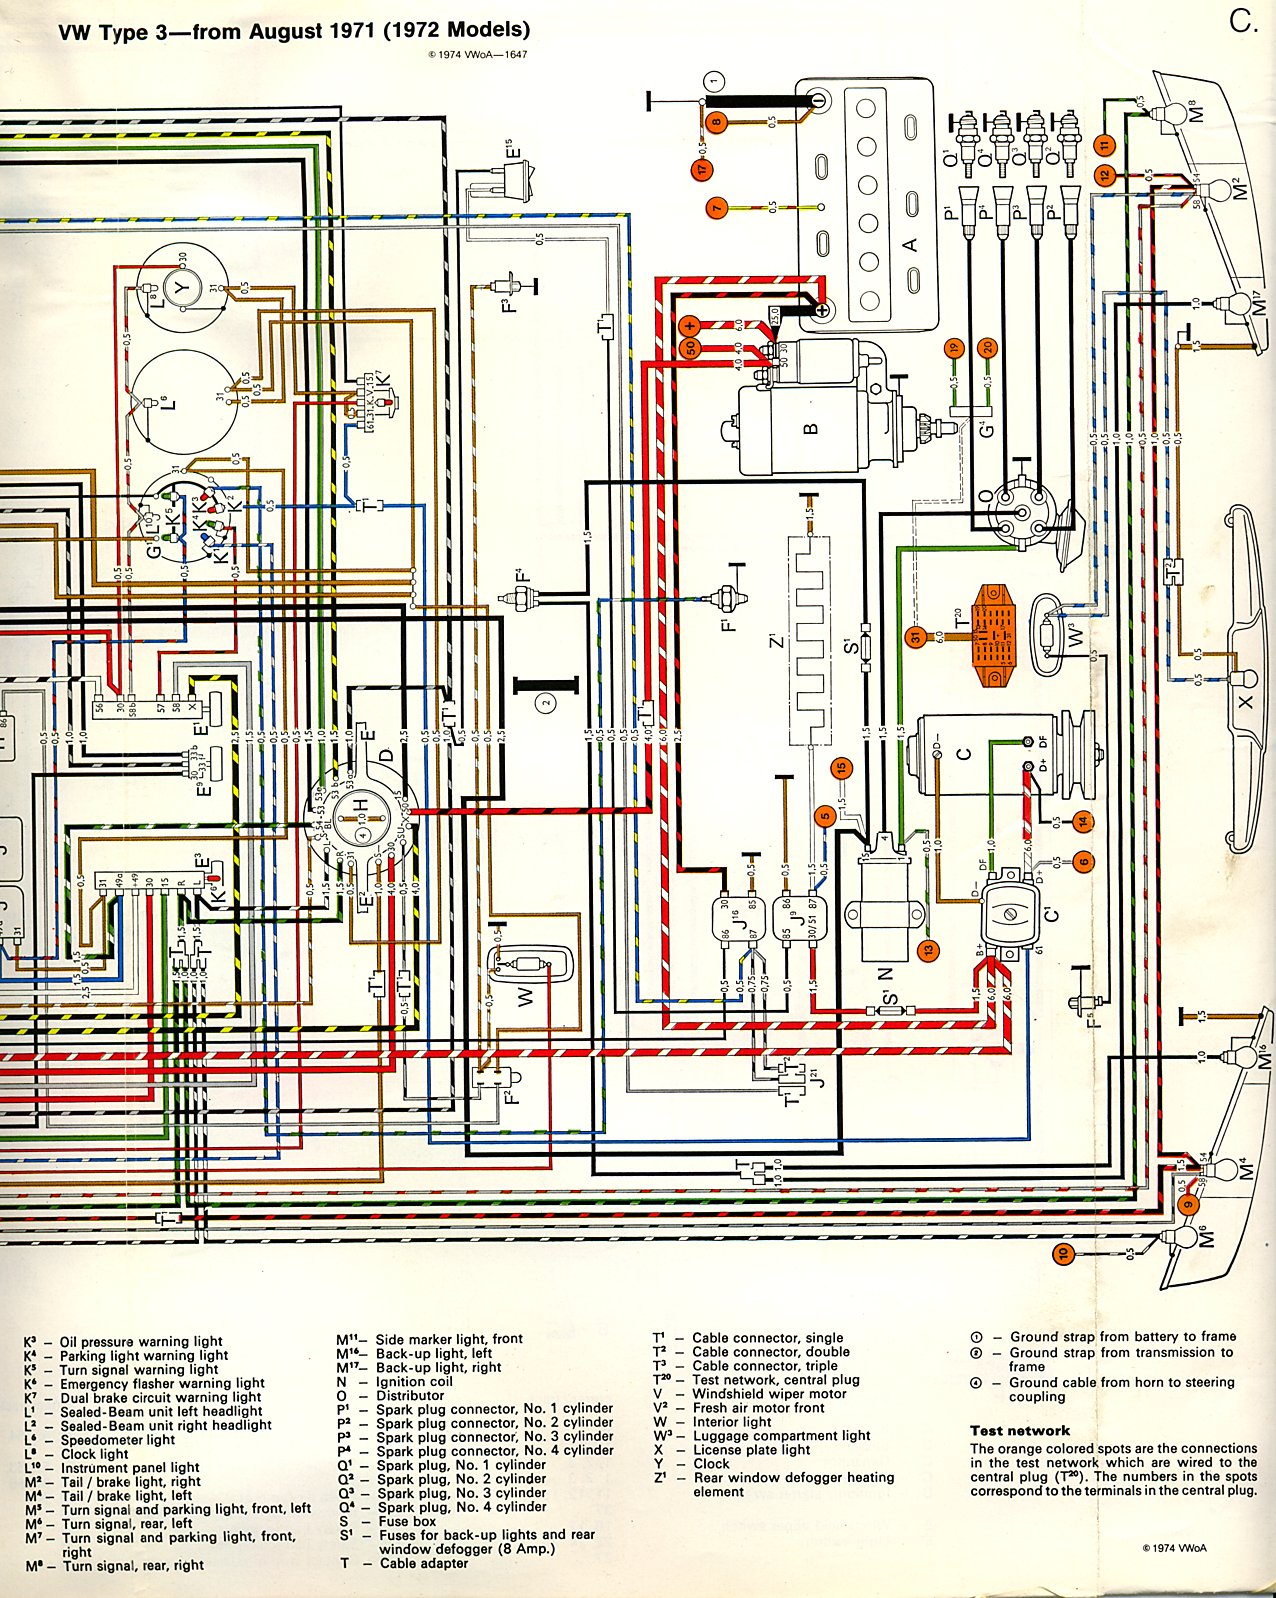 1969 Vw Squareback Wiring Diagram Schematic Will Be 1966 Bug Thesamba Com Type 3 Diagrams Rh 64 Volkswagen